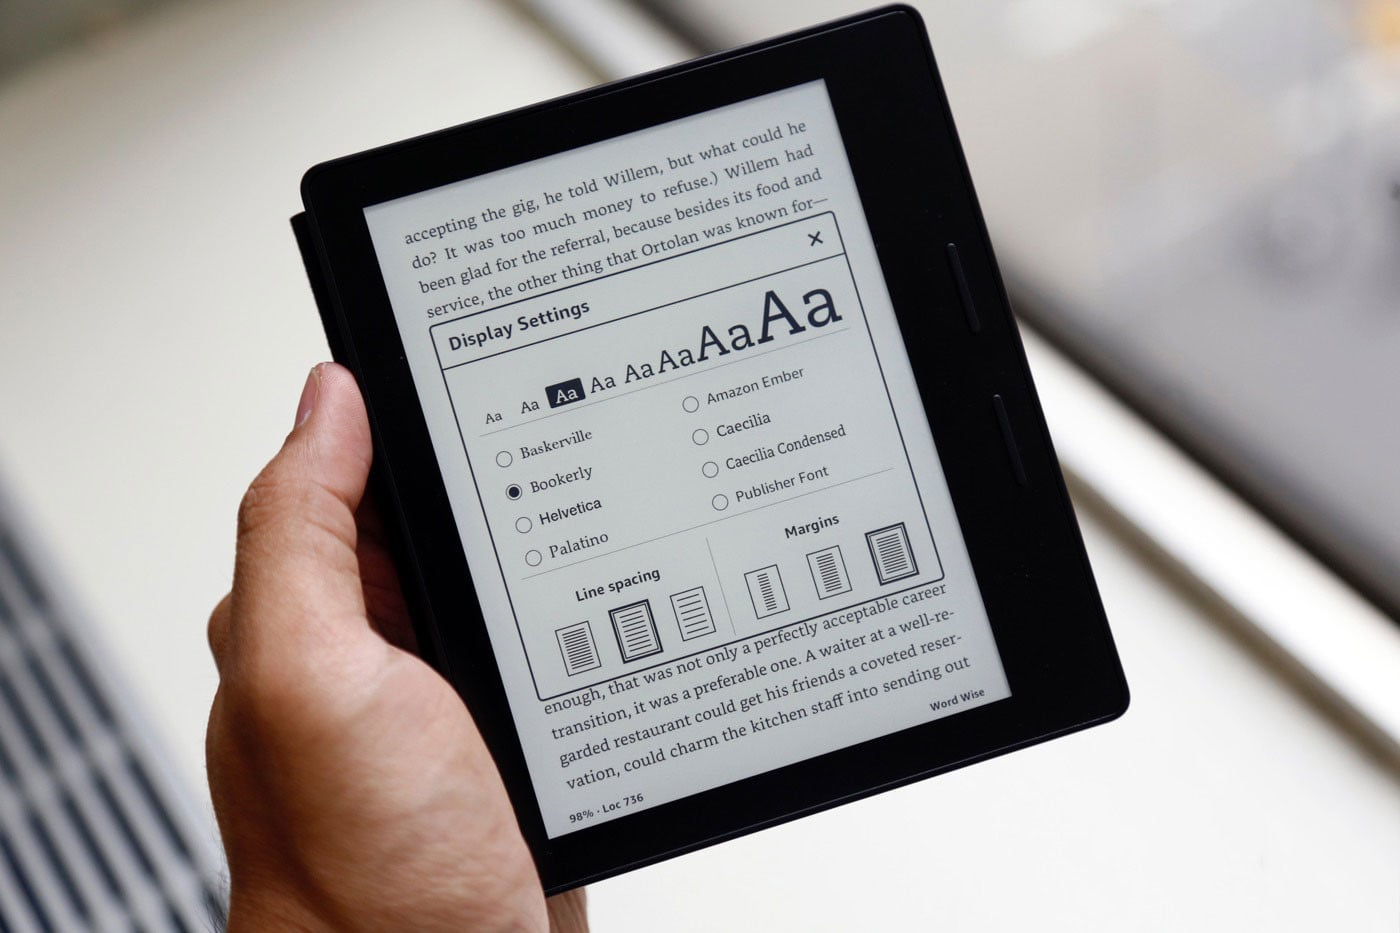 Trade Your Old Kindle for an Amazon Gift Card plus a $20 bonus for a new Kindle